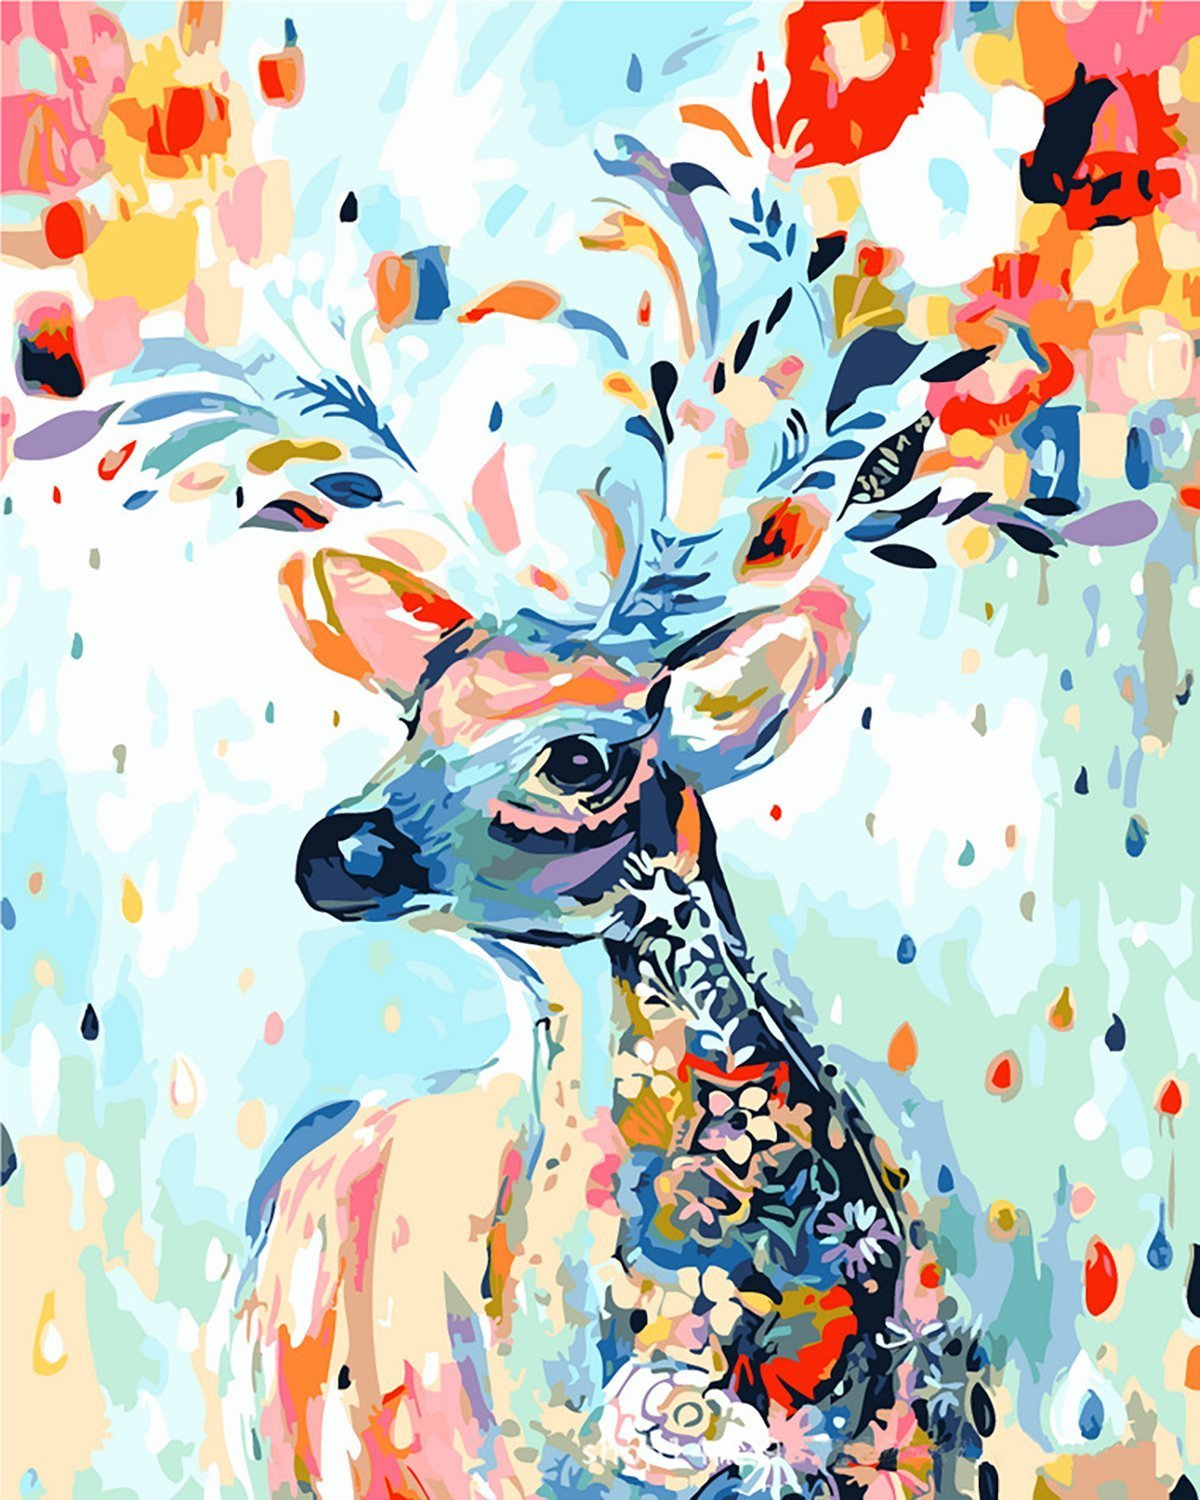 [Framless] Diy Oil Painting Paint by Number Kit for Adult Kids - Painted Deer 16X20 Inch by YXQSED